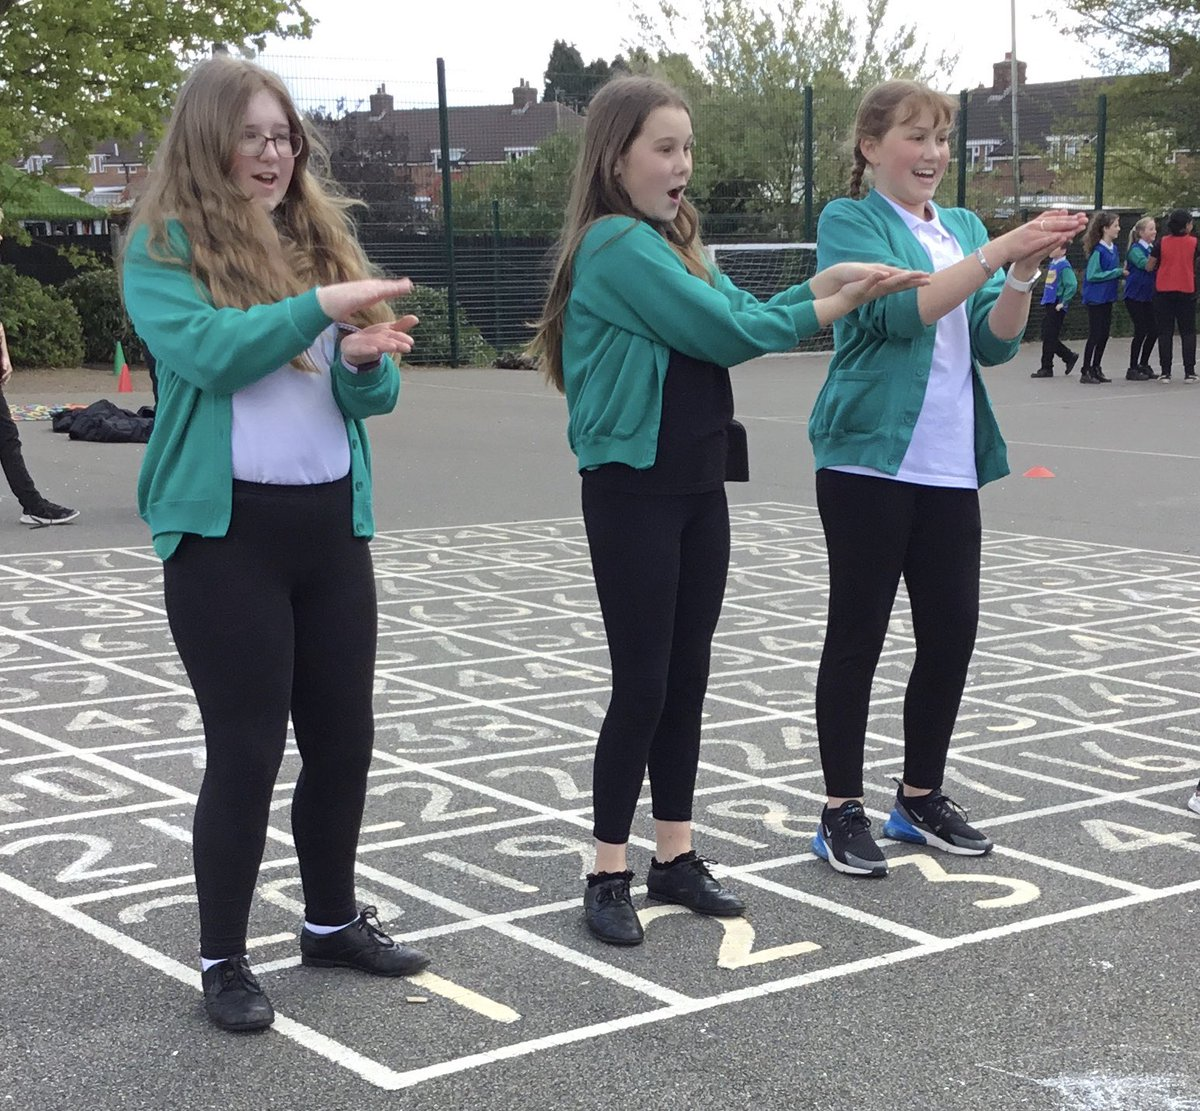 RT @OakthorpeSchool: Our Sports ambassadors and 5/6 @Pioneer_Class were fantastic at leading a very happy lunchtime today. Children of all ages were joining in (in their bubbles) with the dancing. @oval_leaders